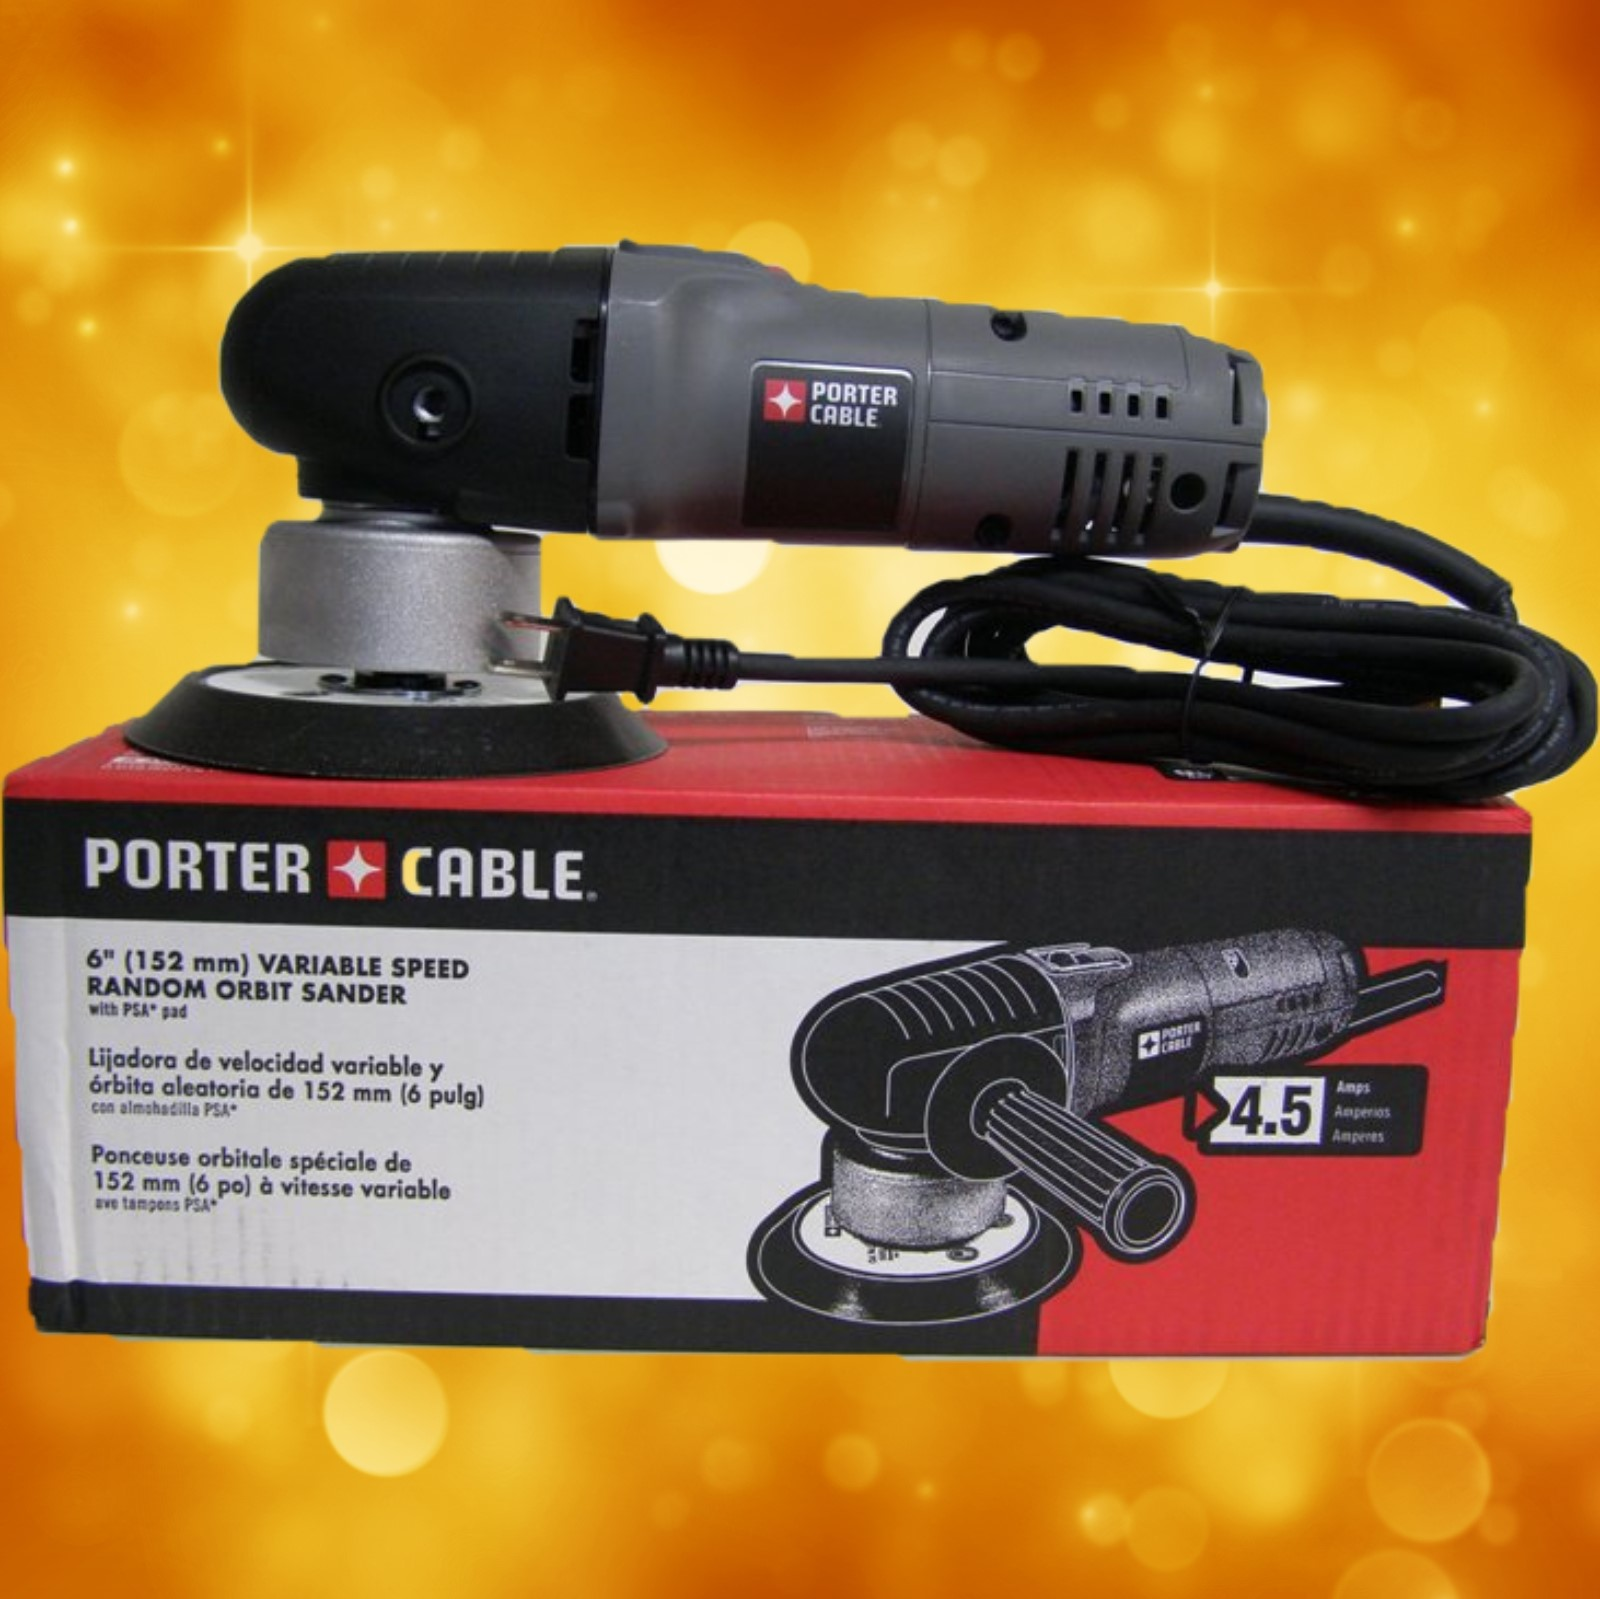 "Porter Cable Polisher 7346SP 6"" Variable-Speed Random Orbit Sander with Polishing Pad"